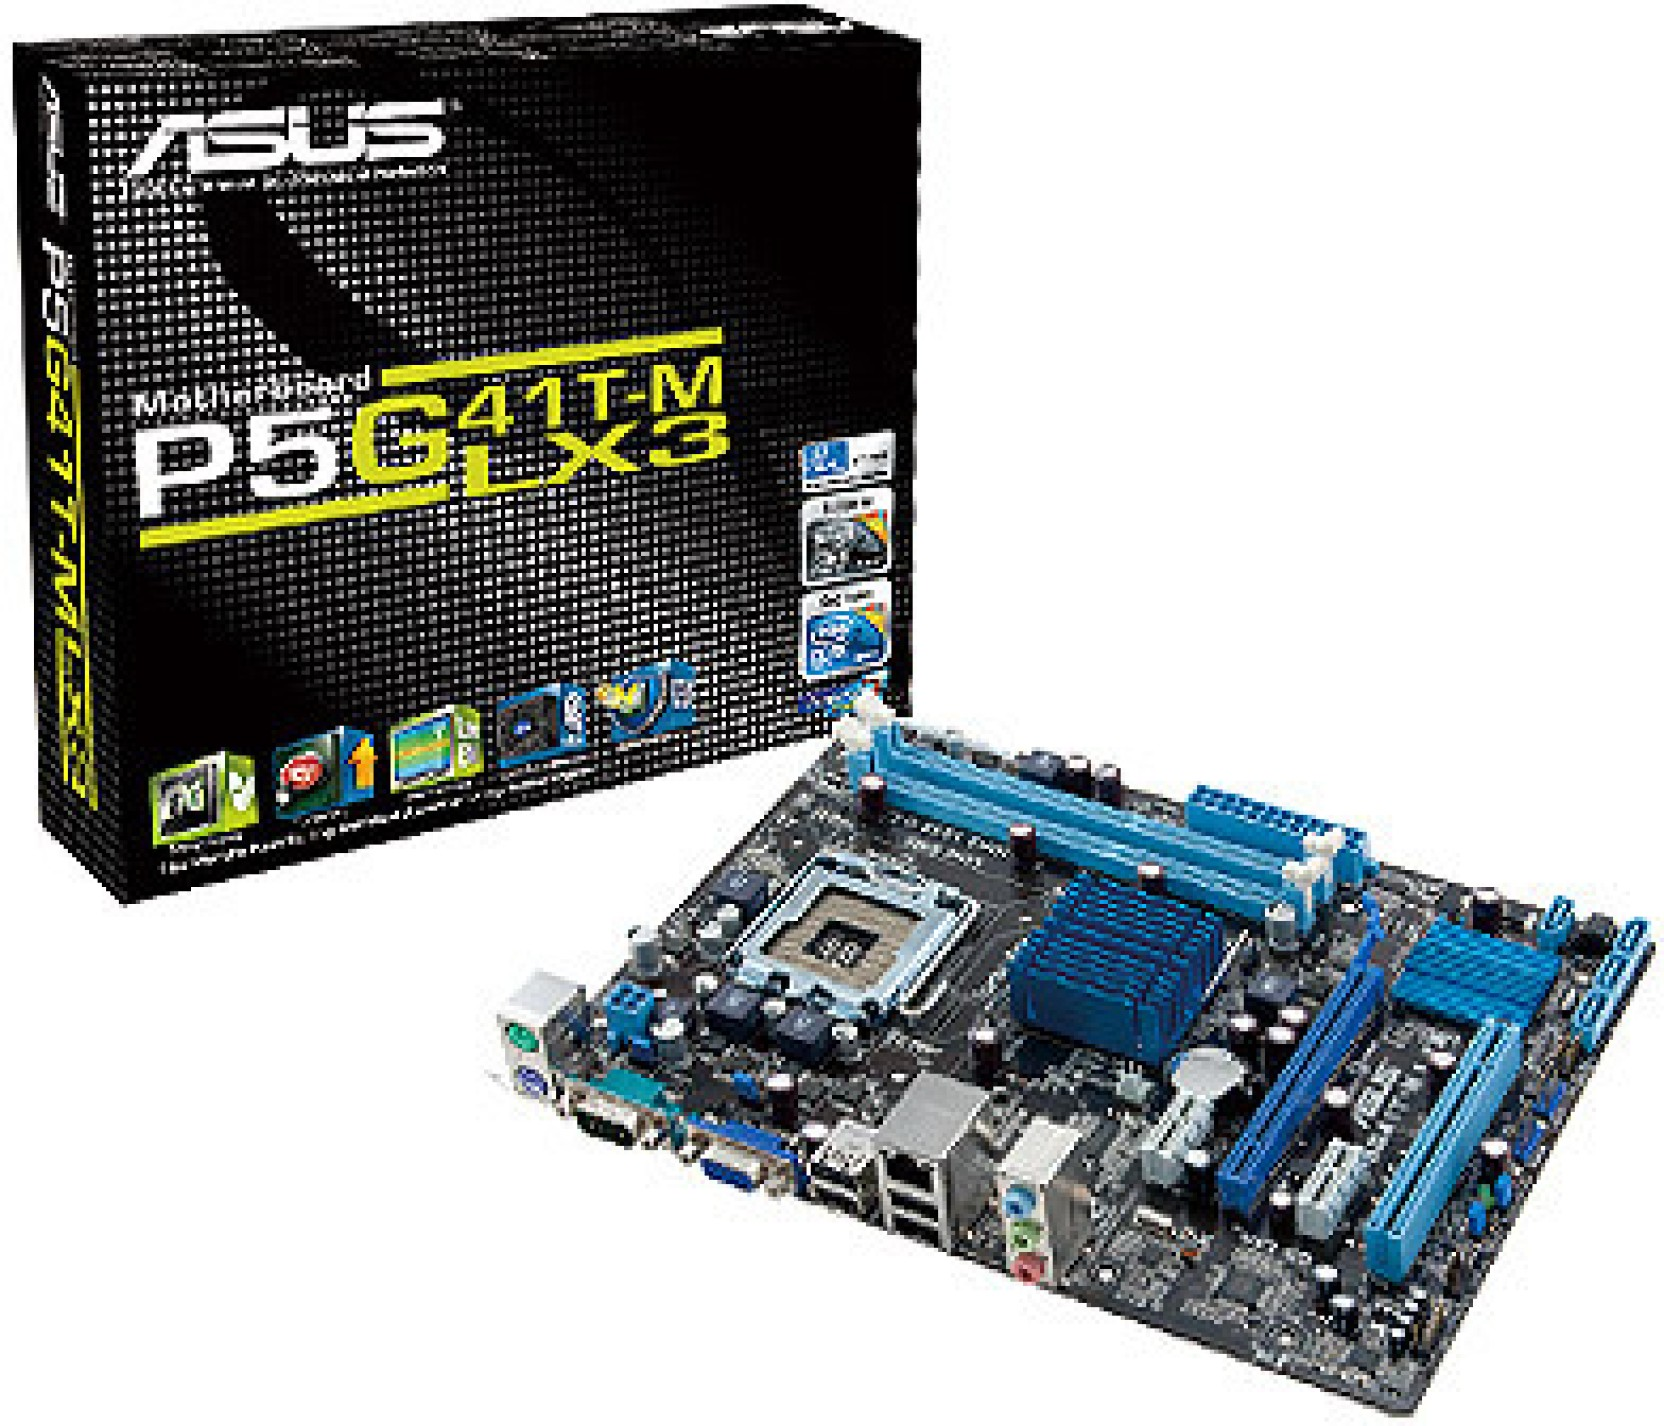 Asus P5g41t M Lx3 Motherboard Accessories Others Repair Parts X3 Circuit Board